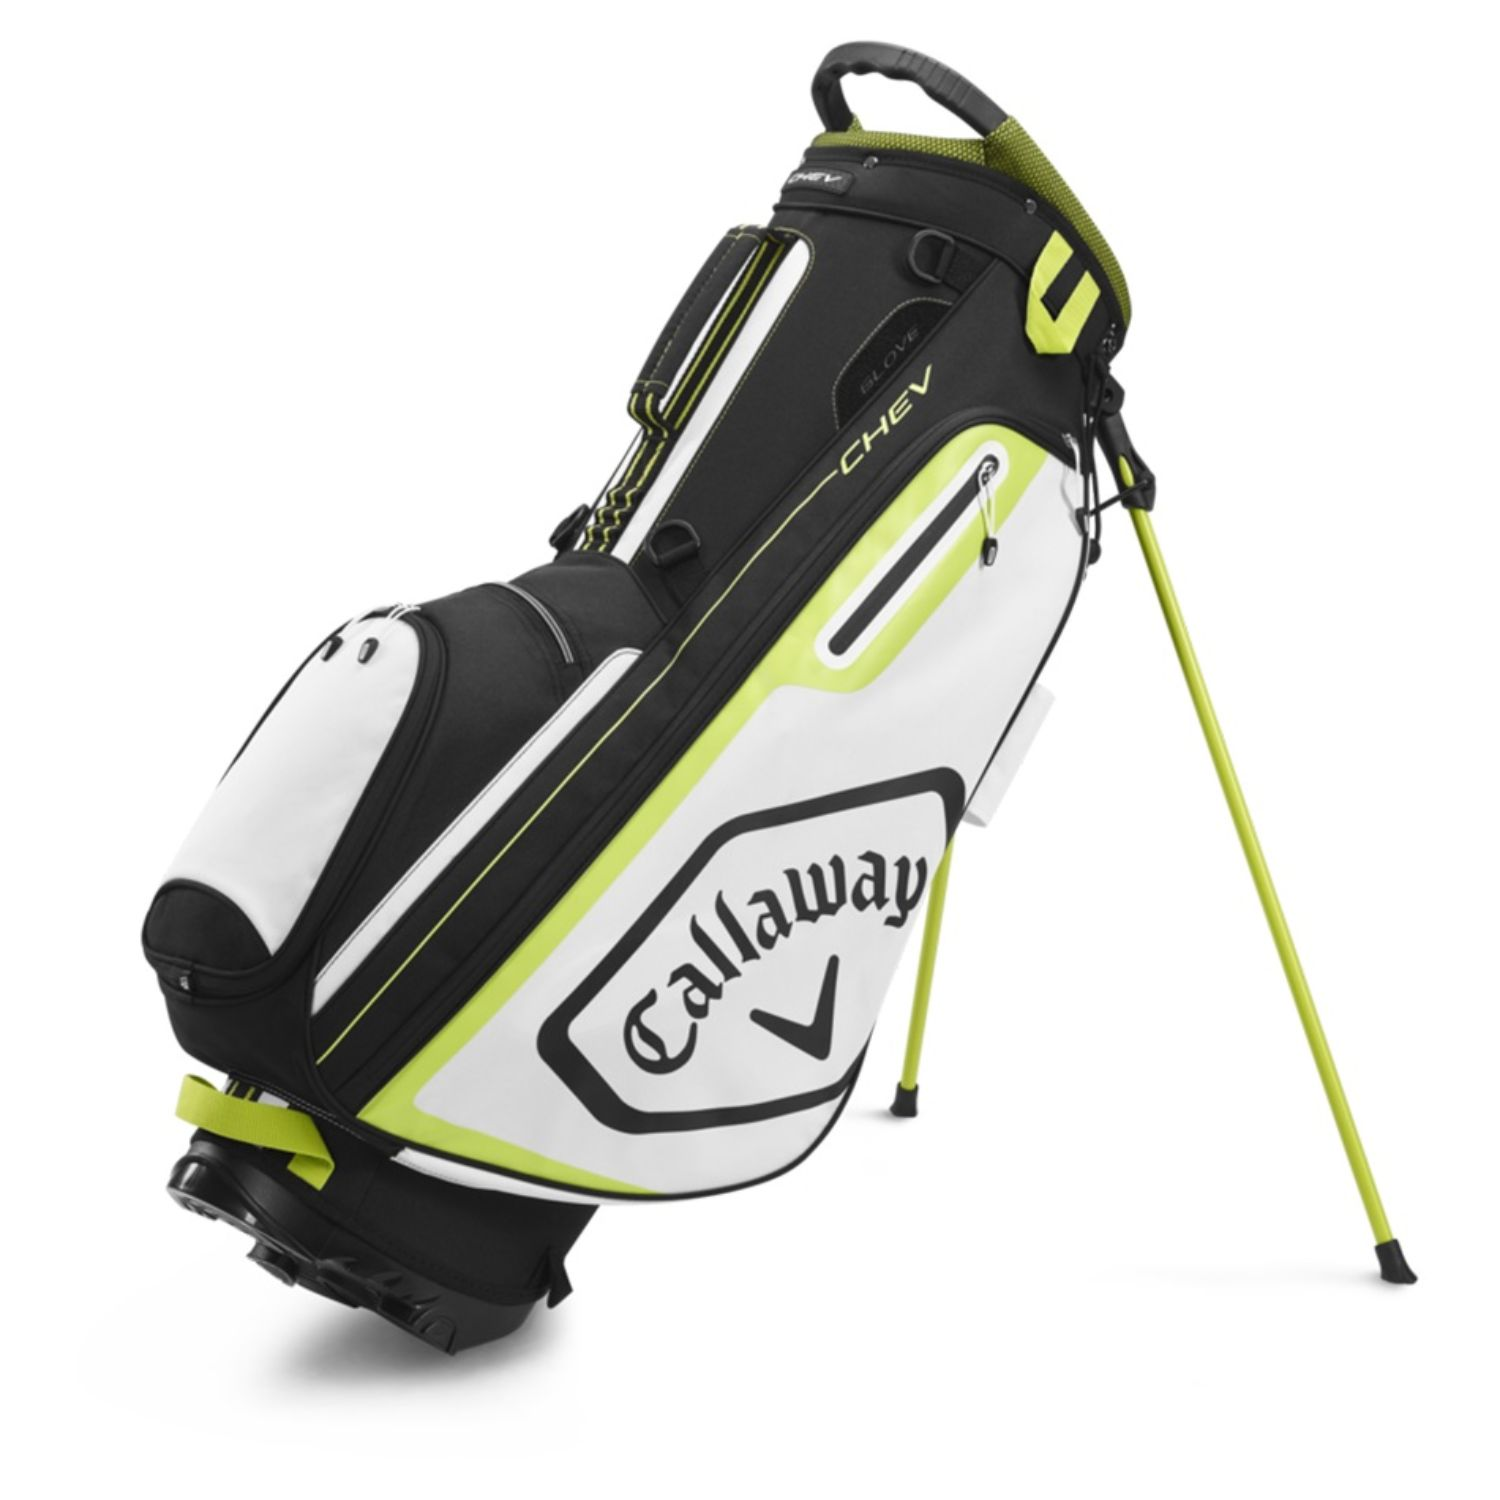 Callaway Golf 2020 Chev Stand Bag-Black-White-Yellow